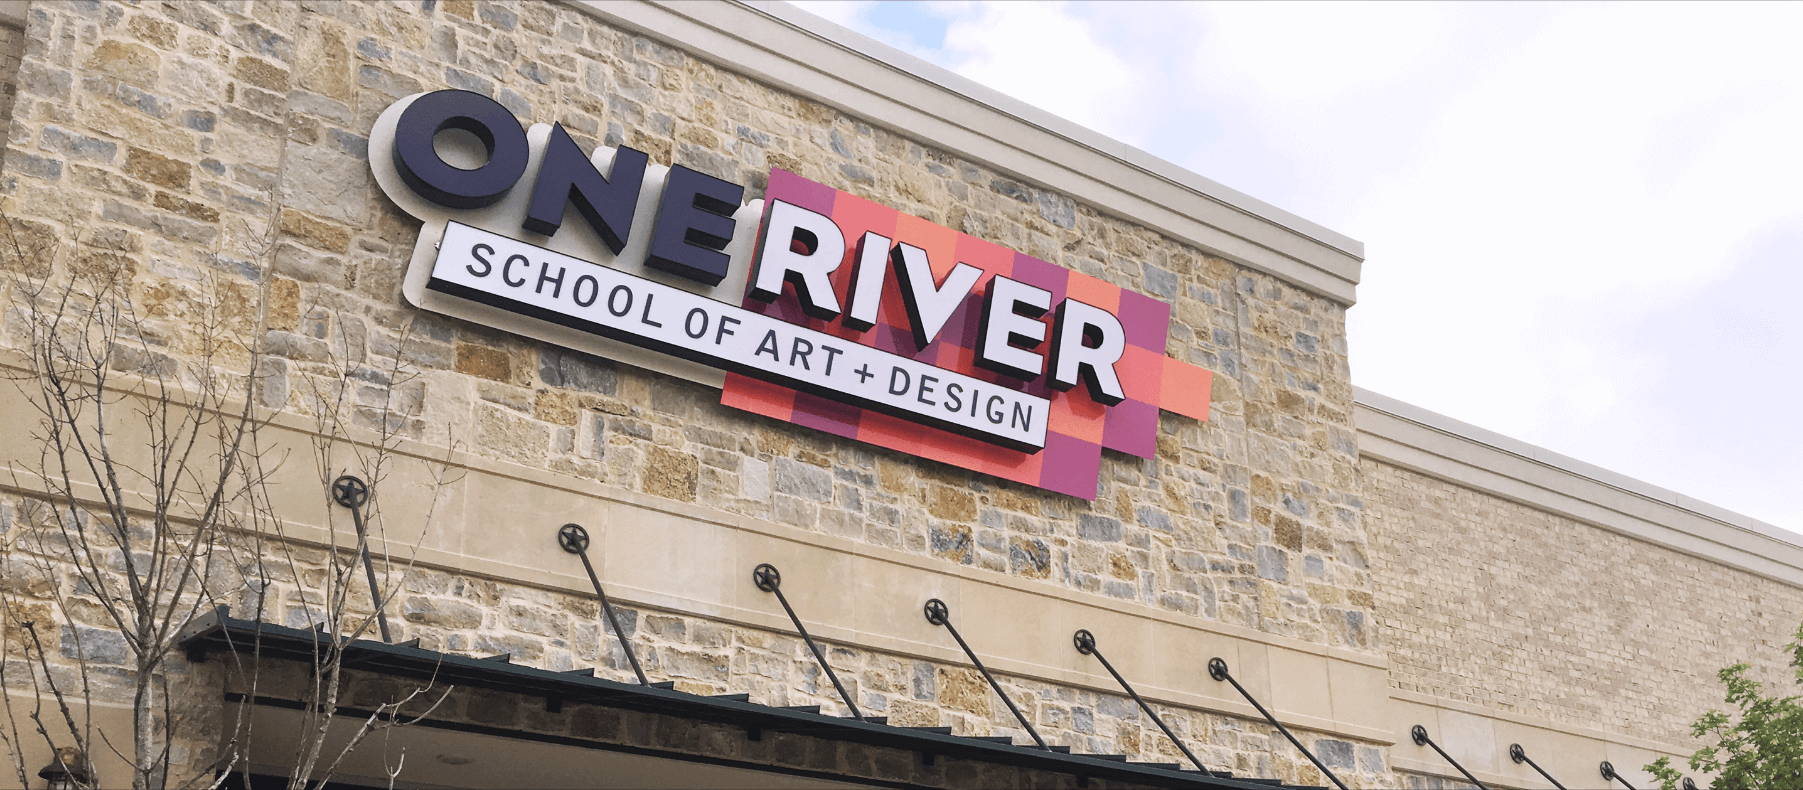 One River School of Art and Design